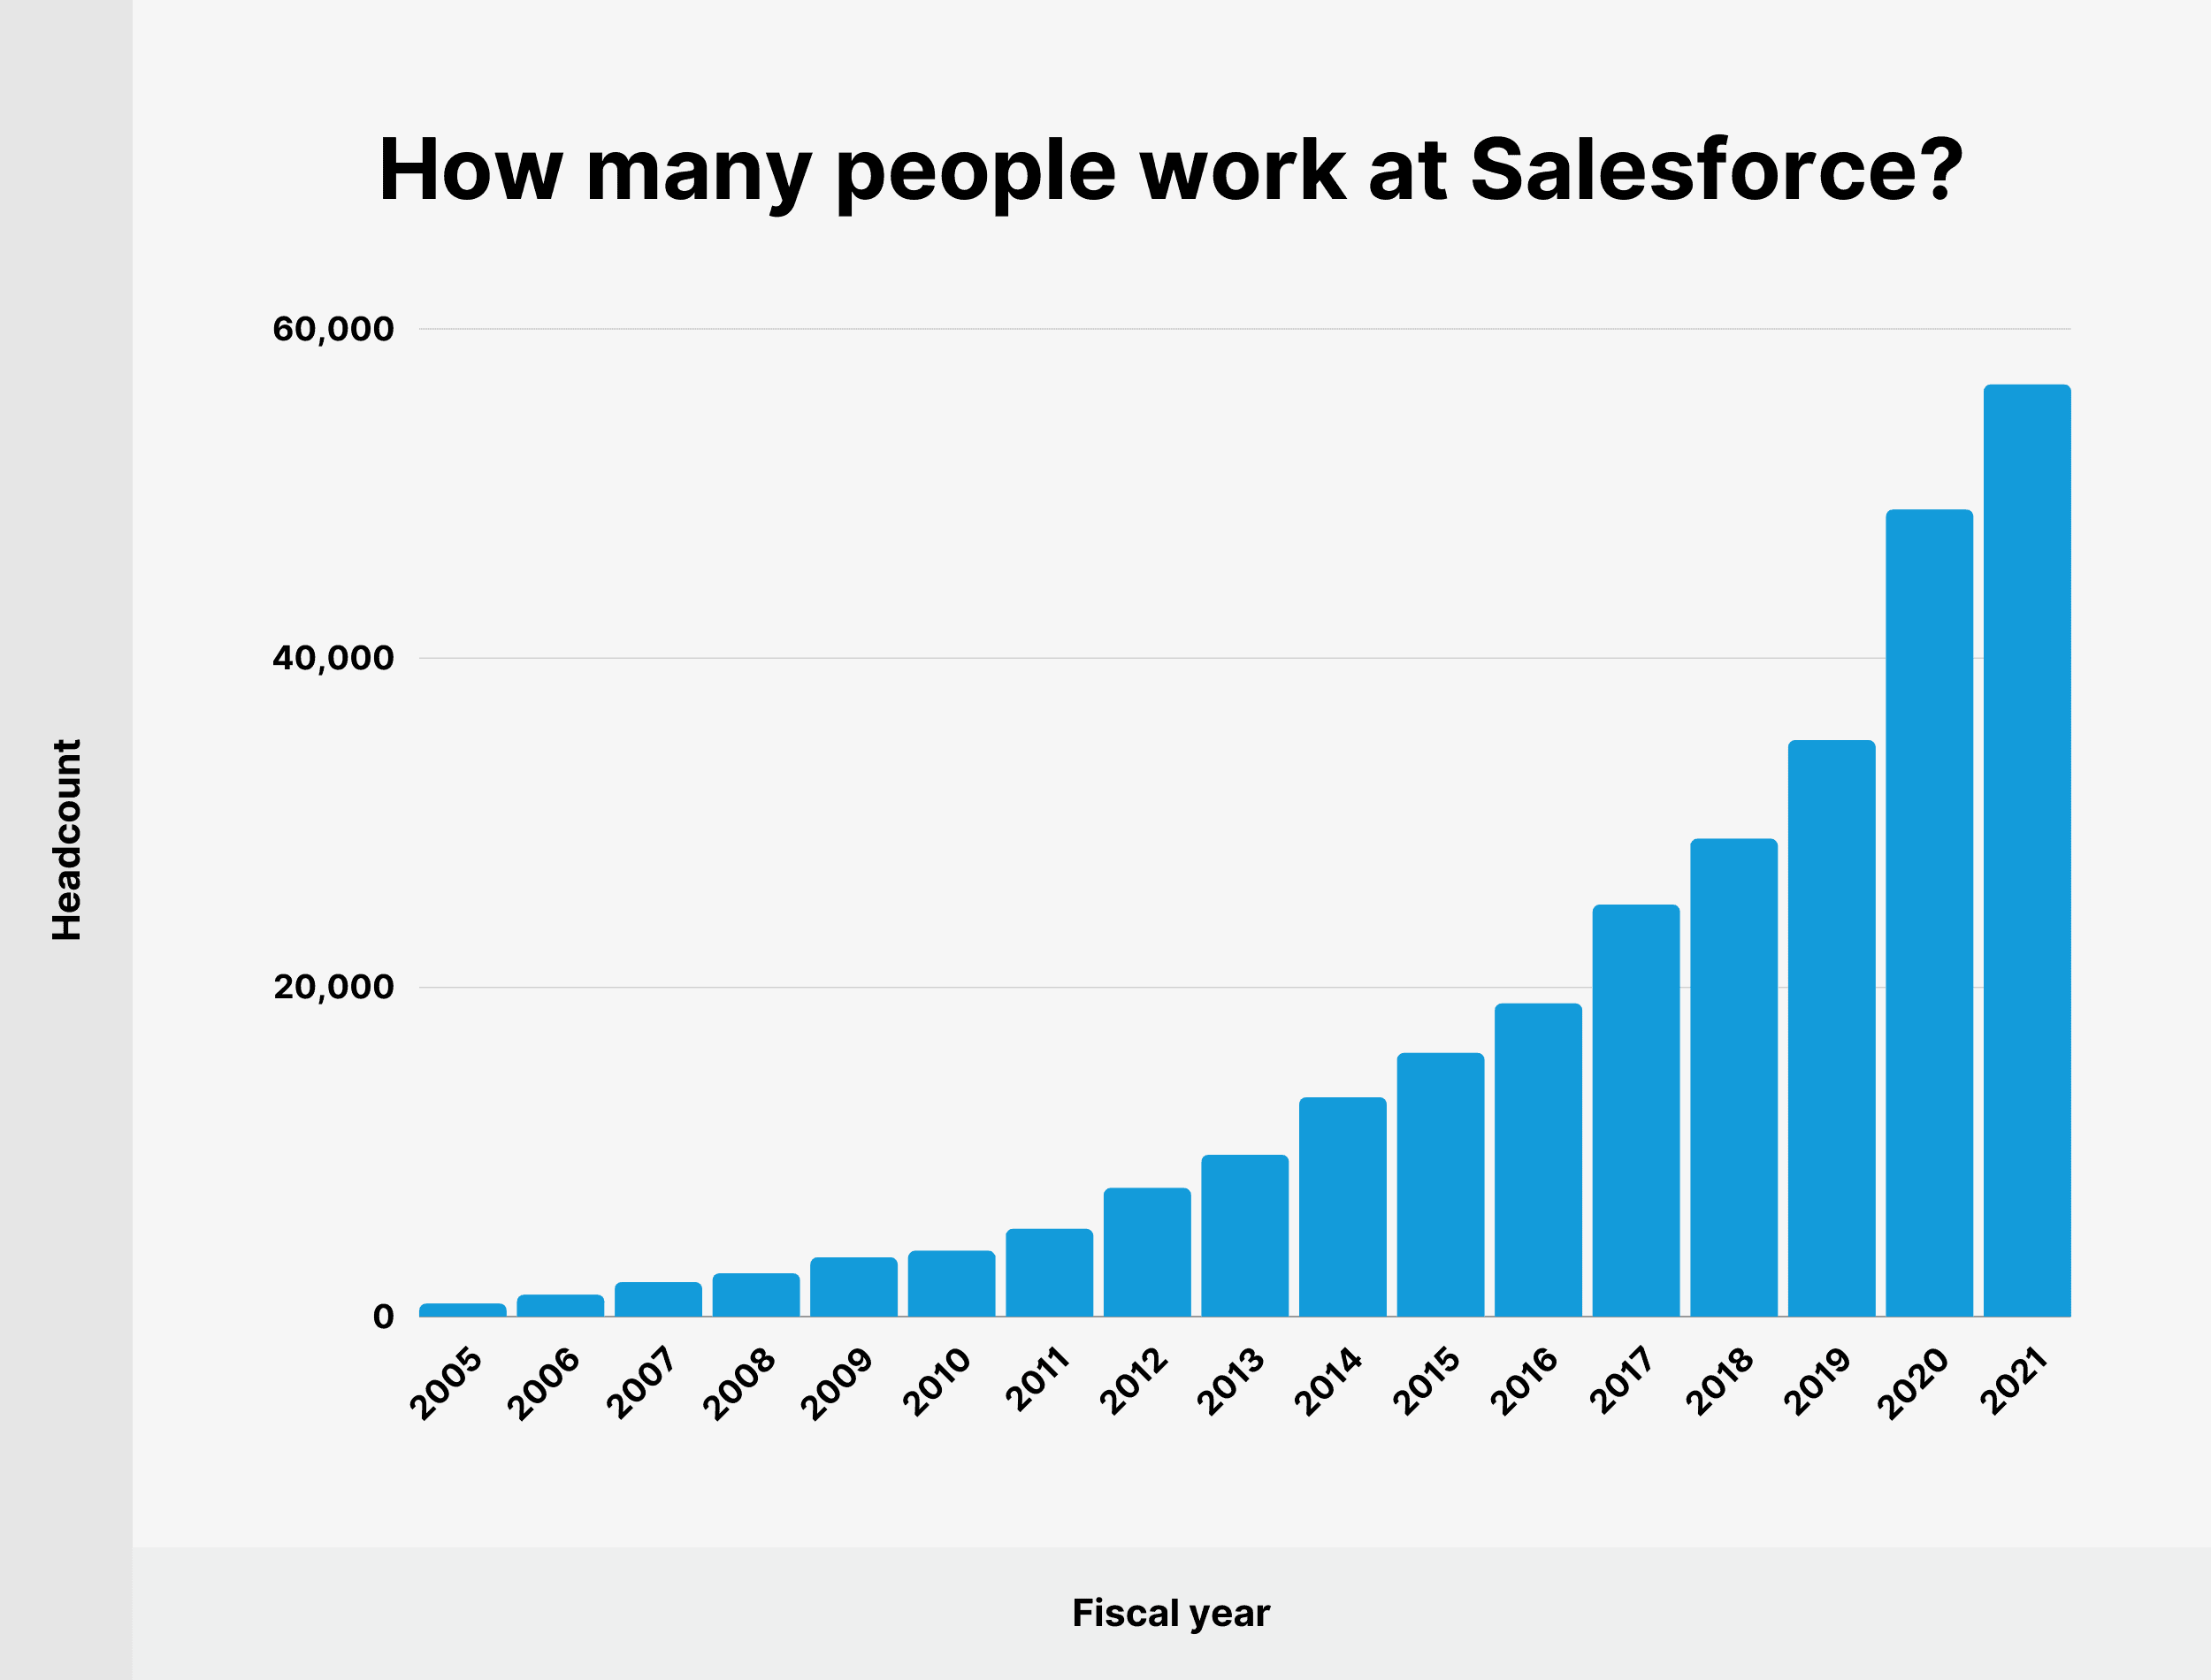 How many people work at Salesforce?